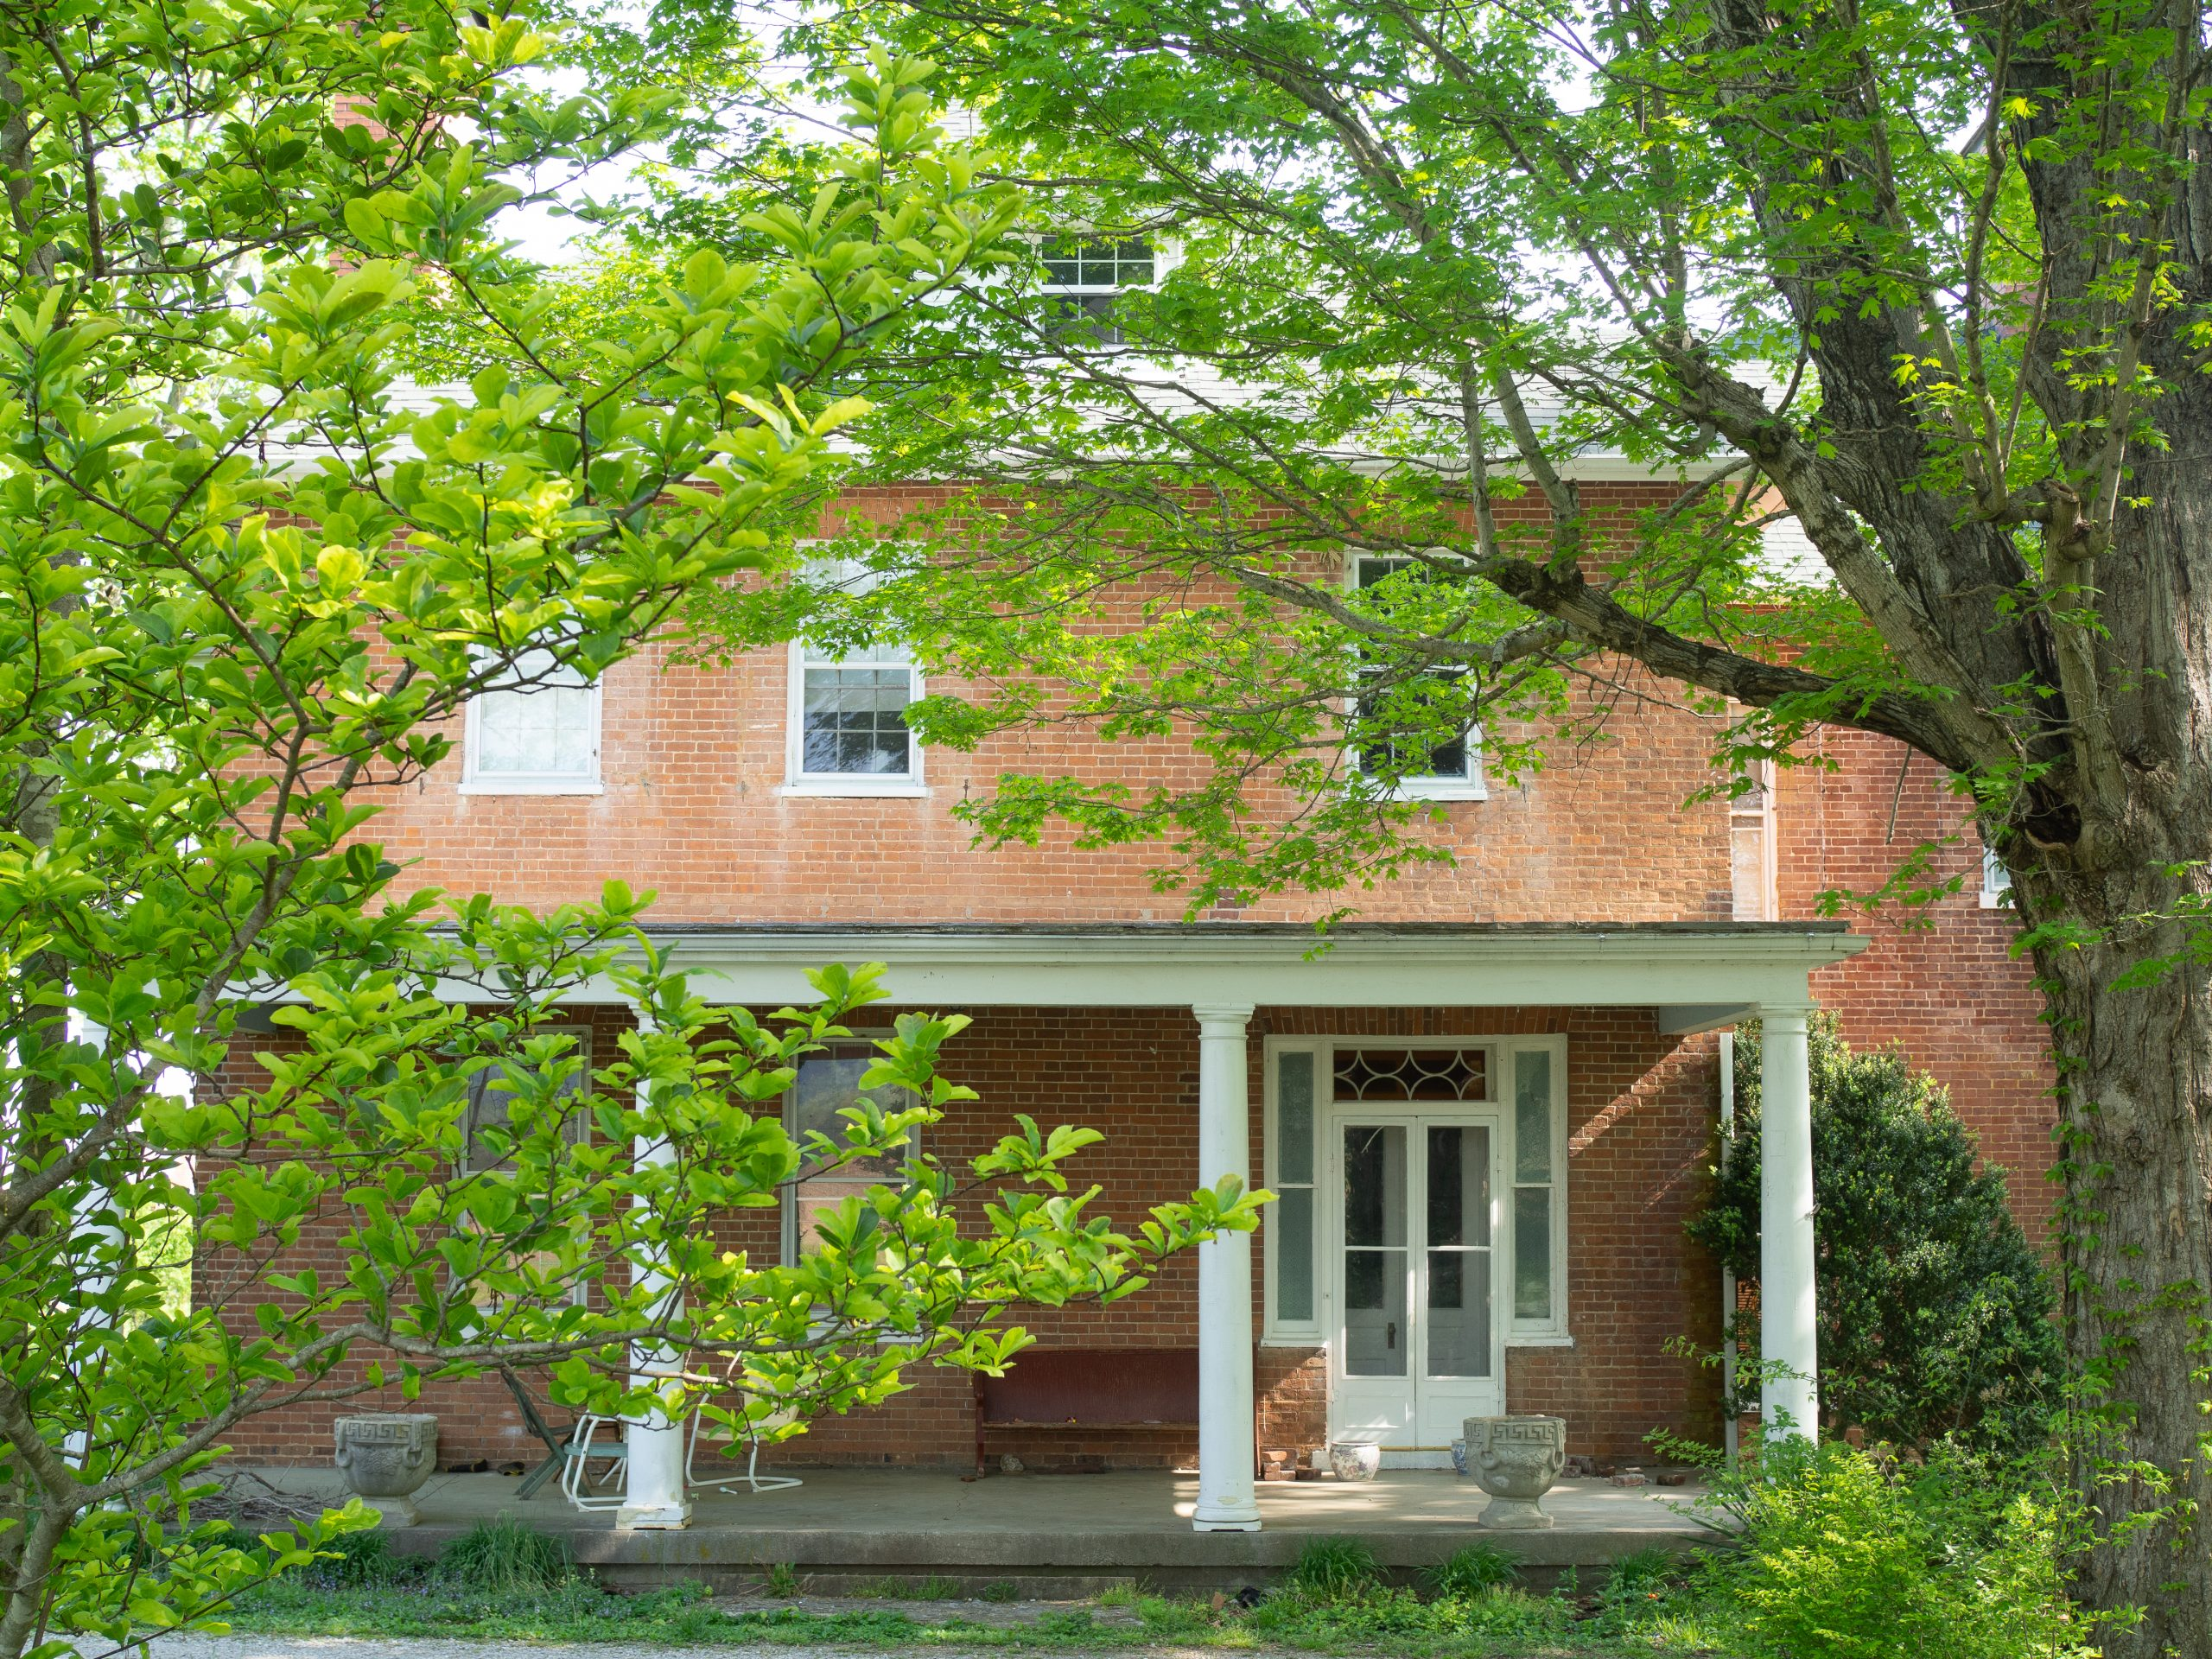 Red brick house with porch colonnades